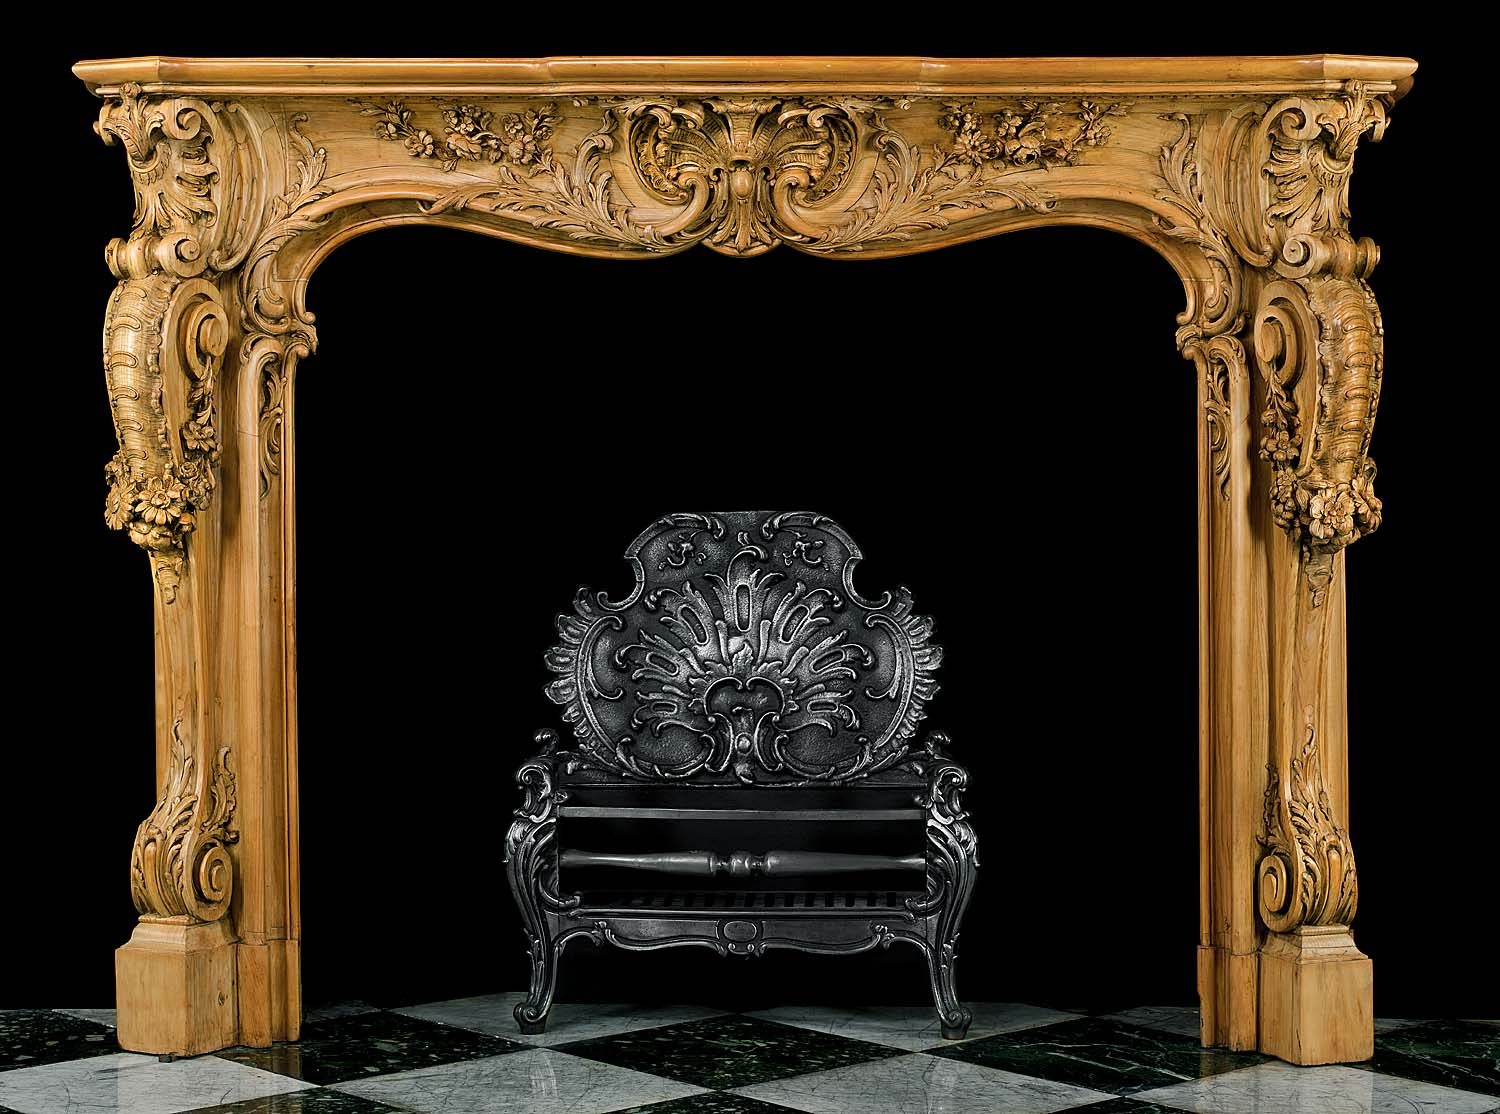 Rare rococo carved pine antique fireplace westland london for What is the other name for the rococo style